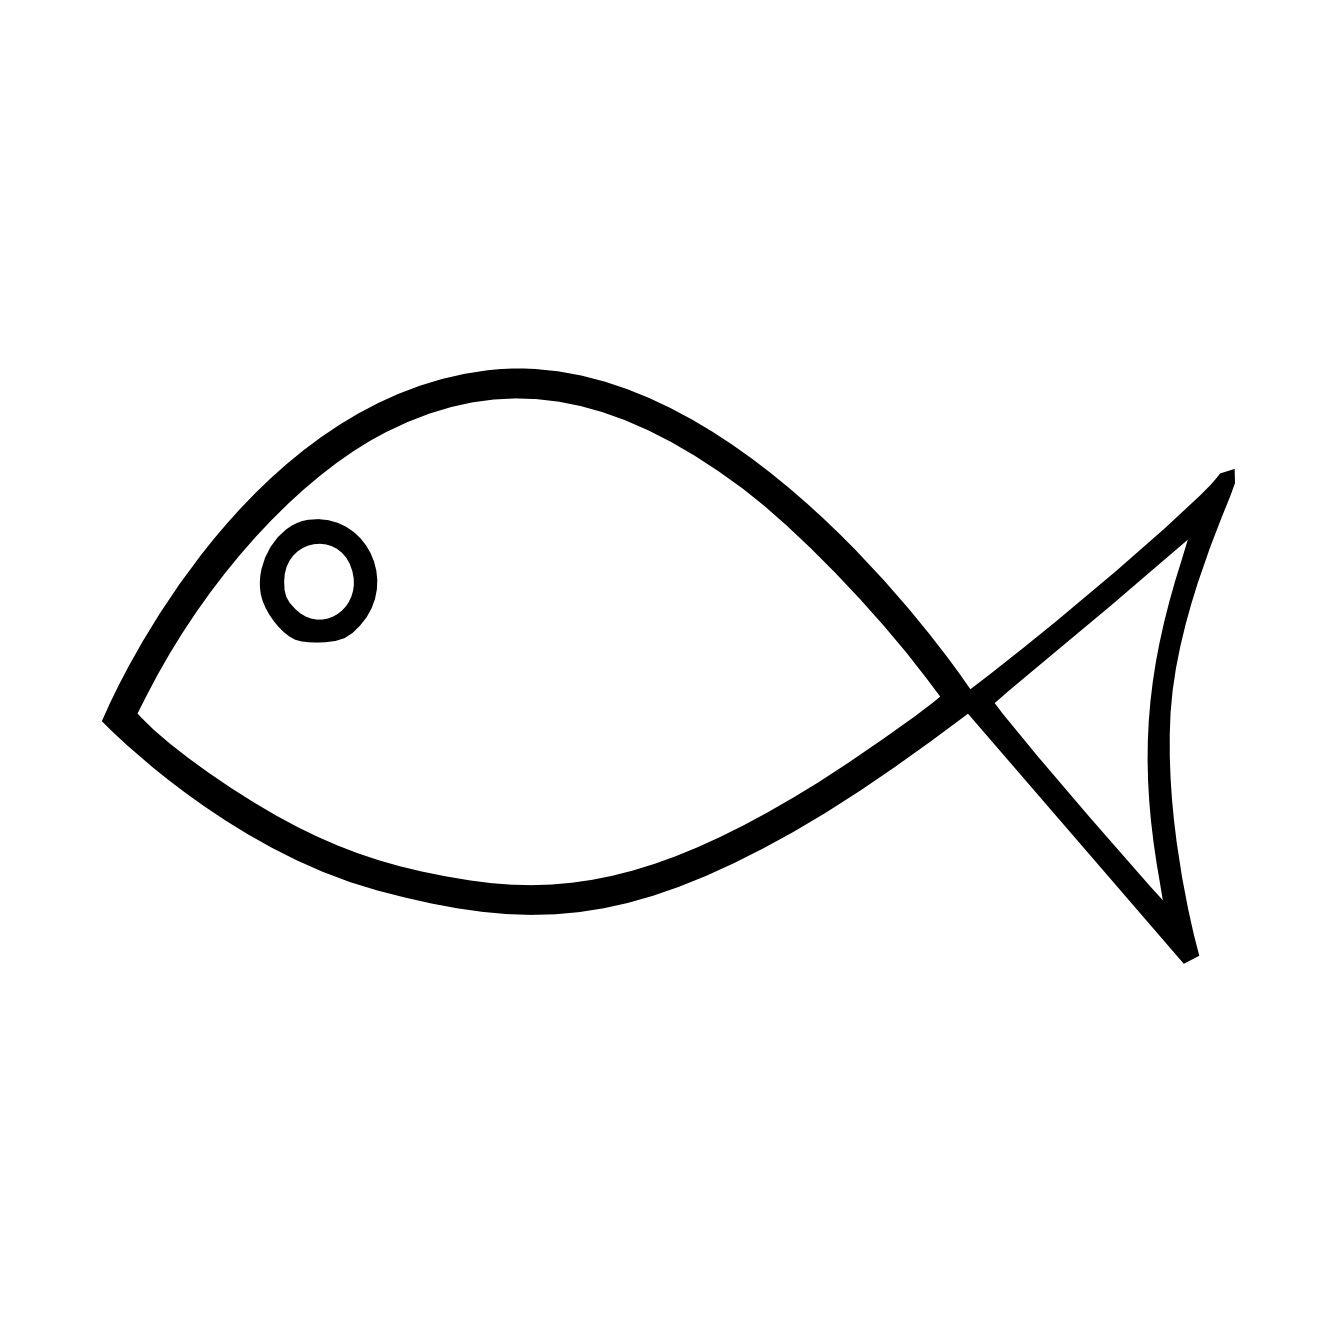 Fish food clipart black and white. Clip art printable free